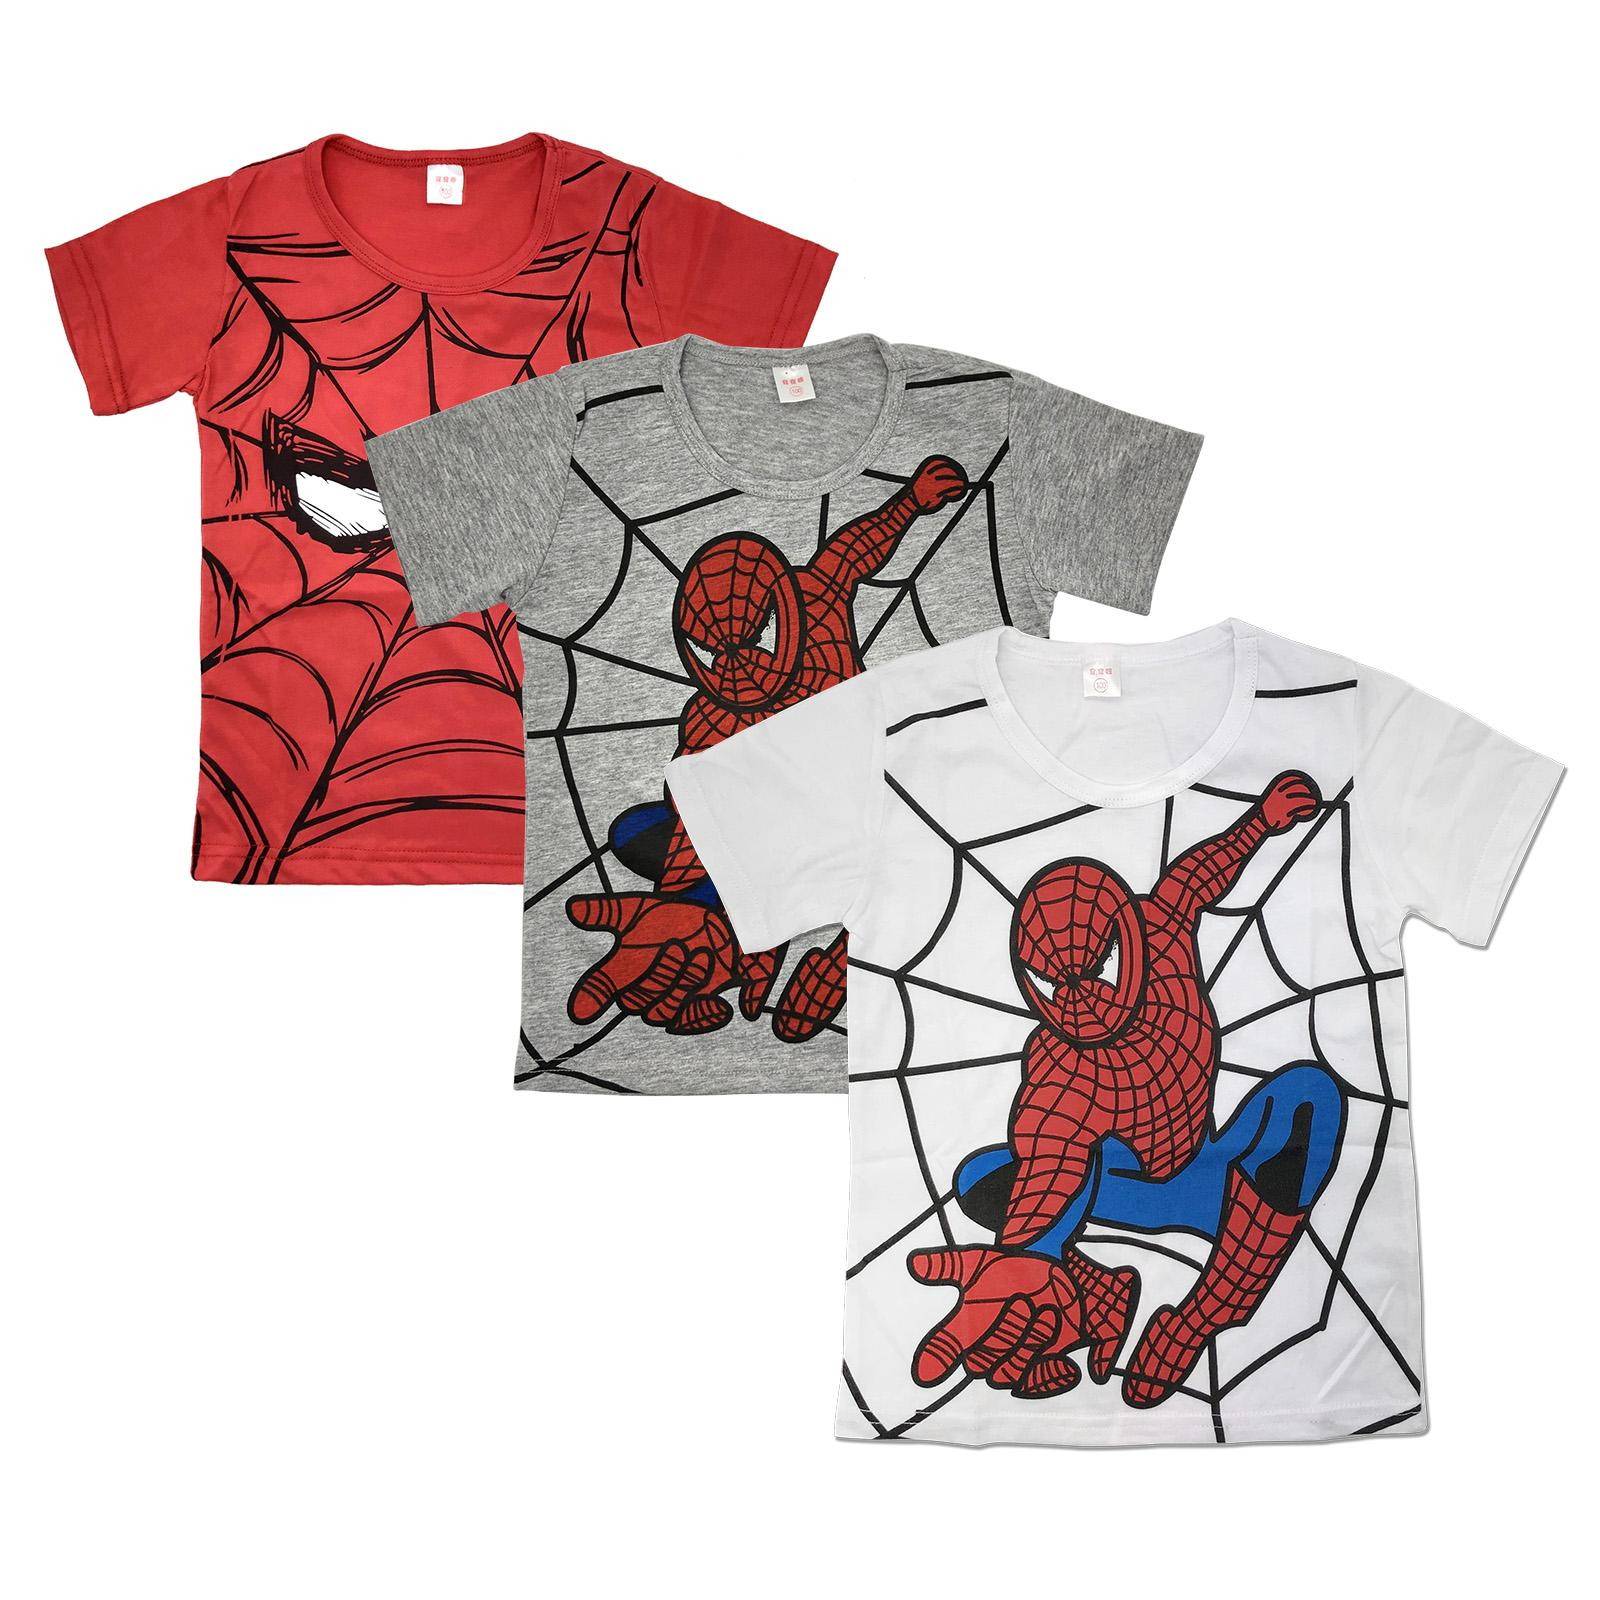 567950f36 Kids Boys Superhero T Shirt Summer Short Sleeve Superman Batman Cotton Tee  Tops Spidermen Red Grey